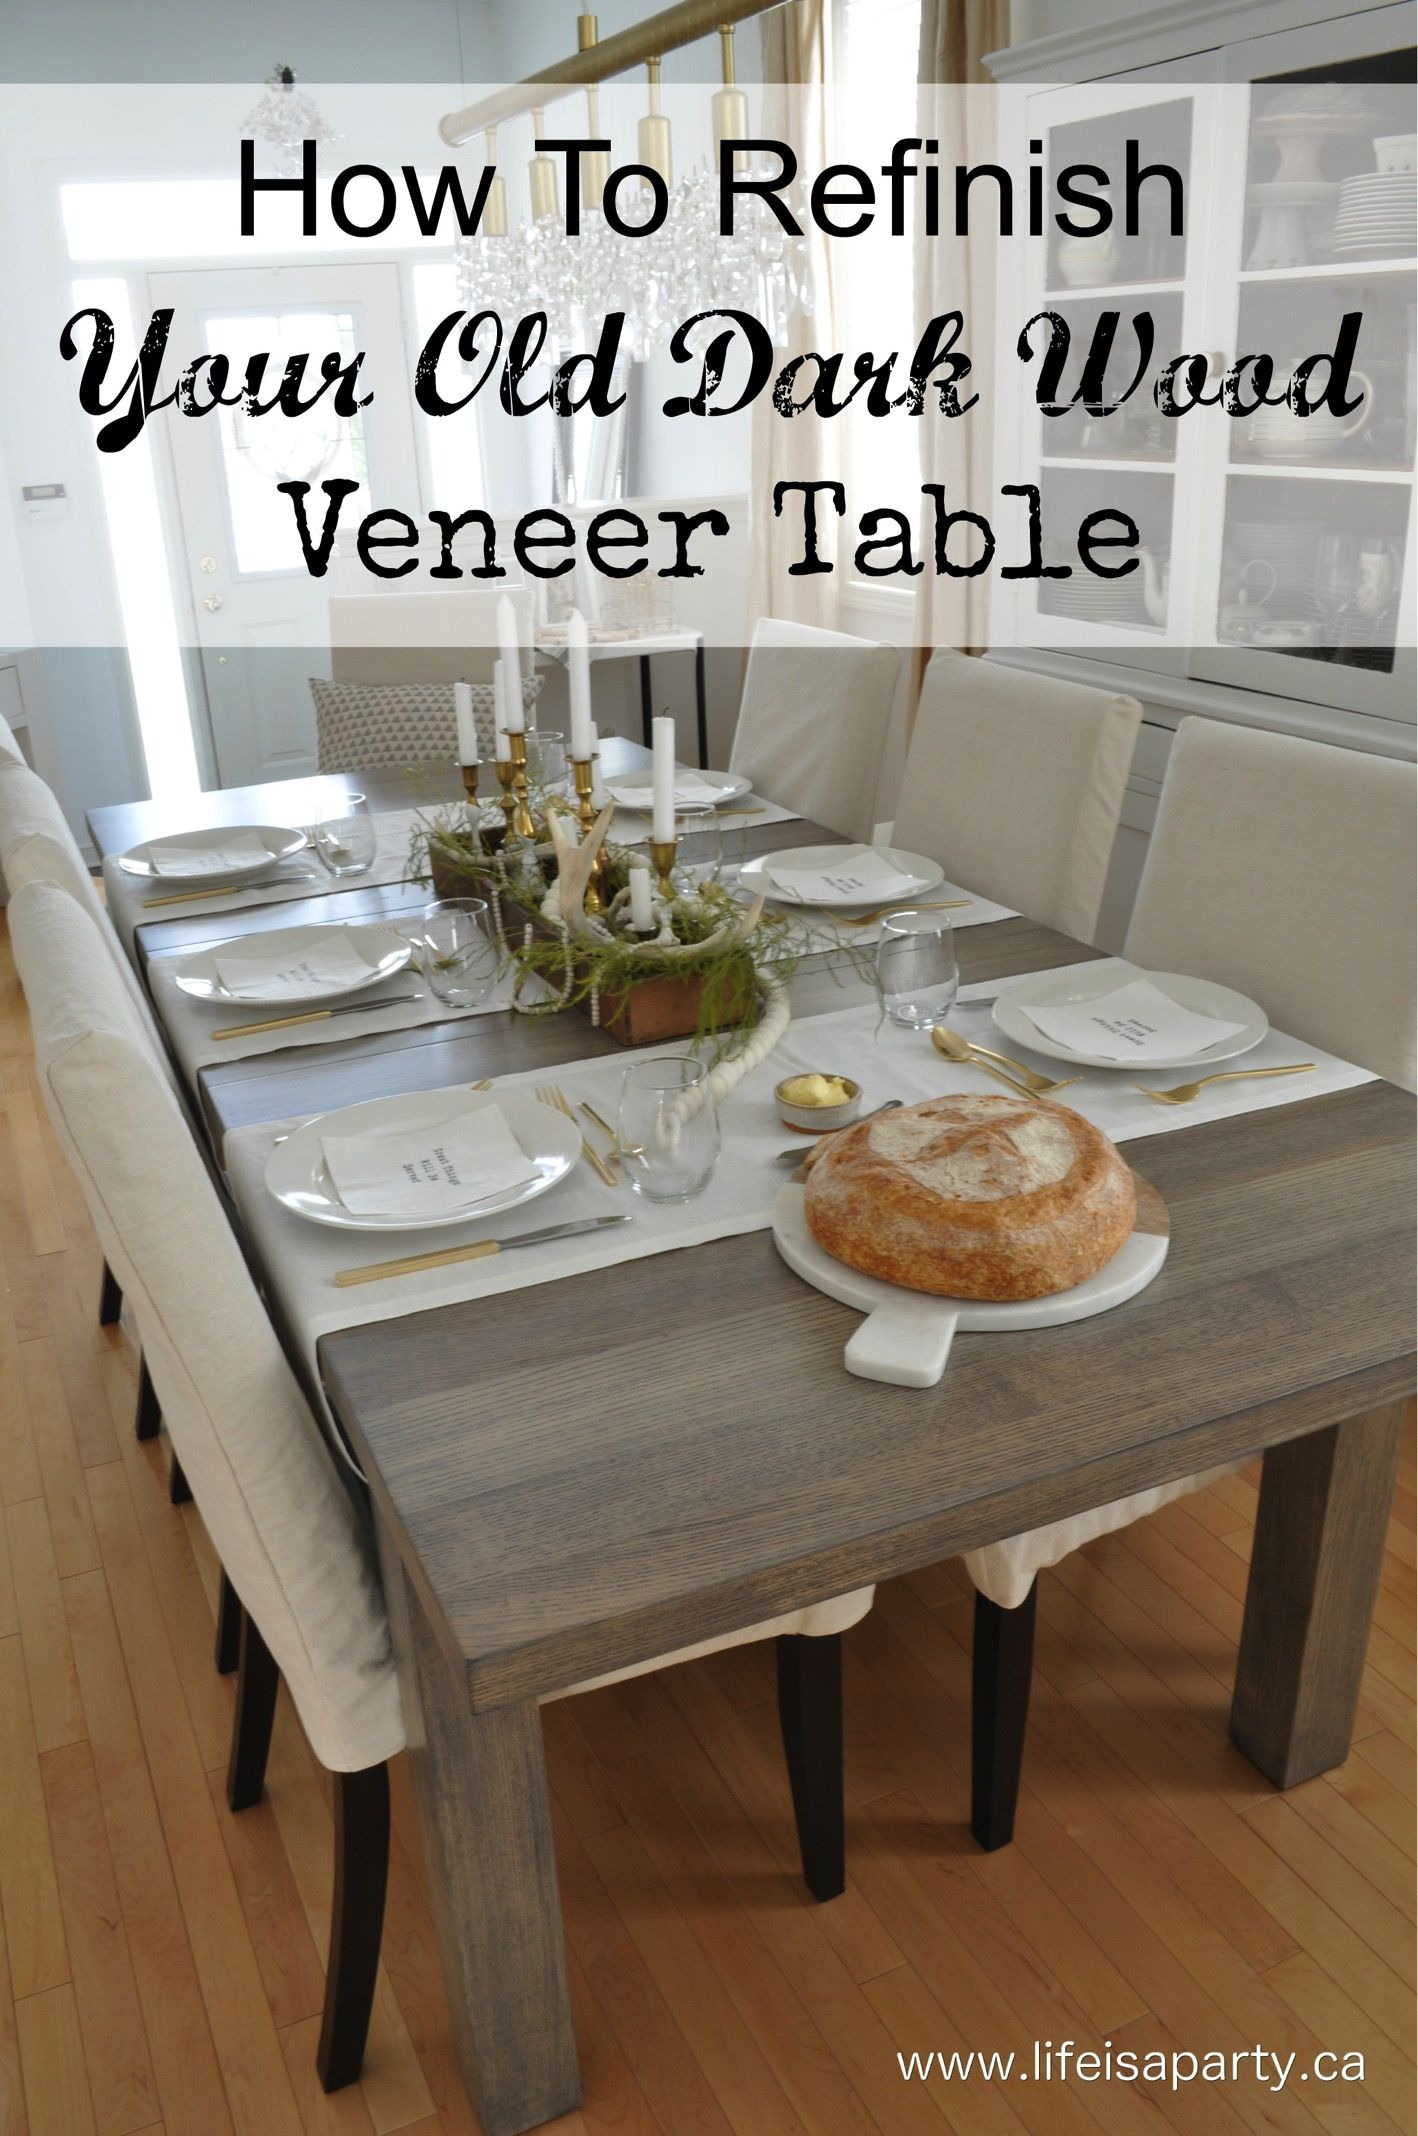 How To Refinish A Dining Room Table Veneer Top Tutorial On How To Refinish Your Dark Wood In 2020 Wood Dining Room Table Kitchen Table Wood Refinishing Kitchen Tables